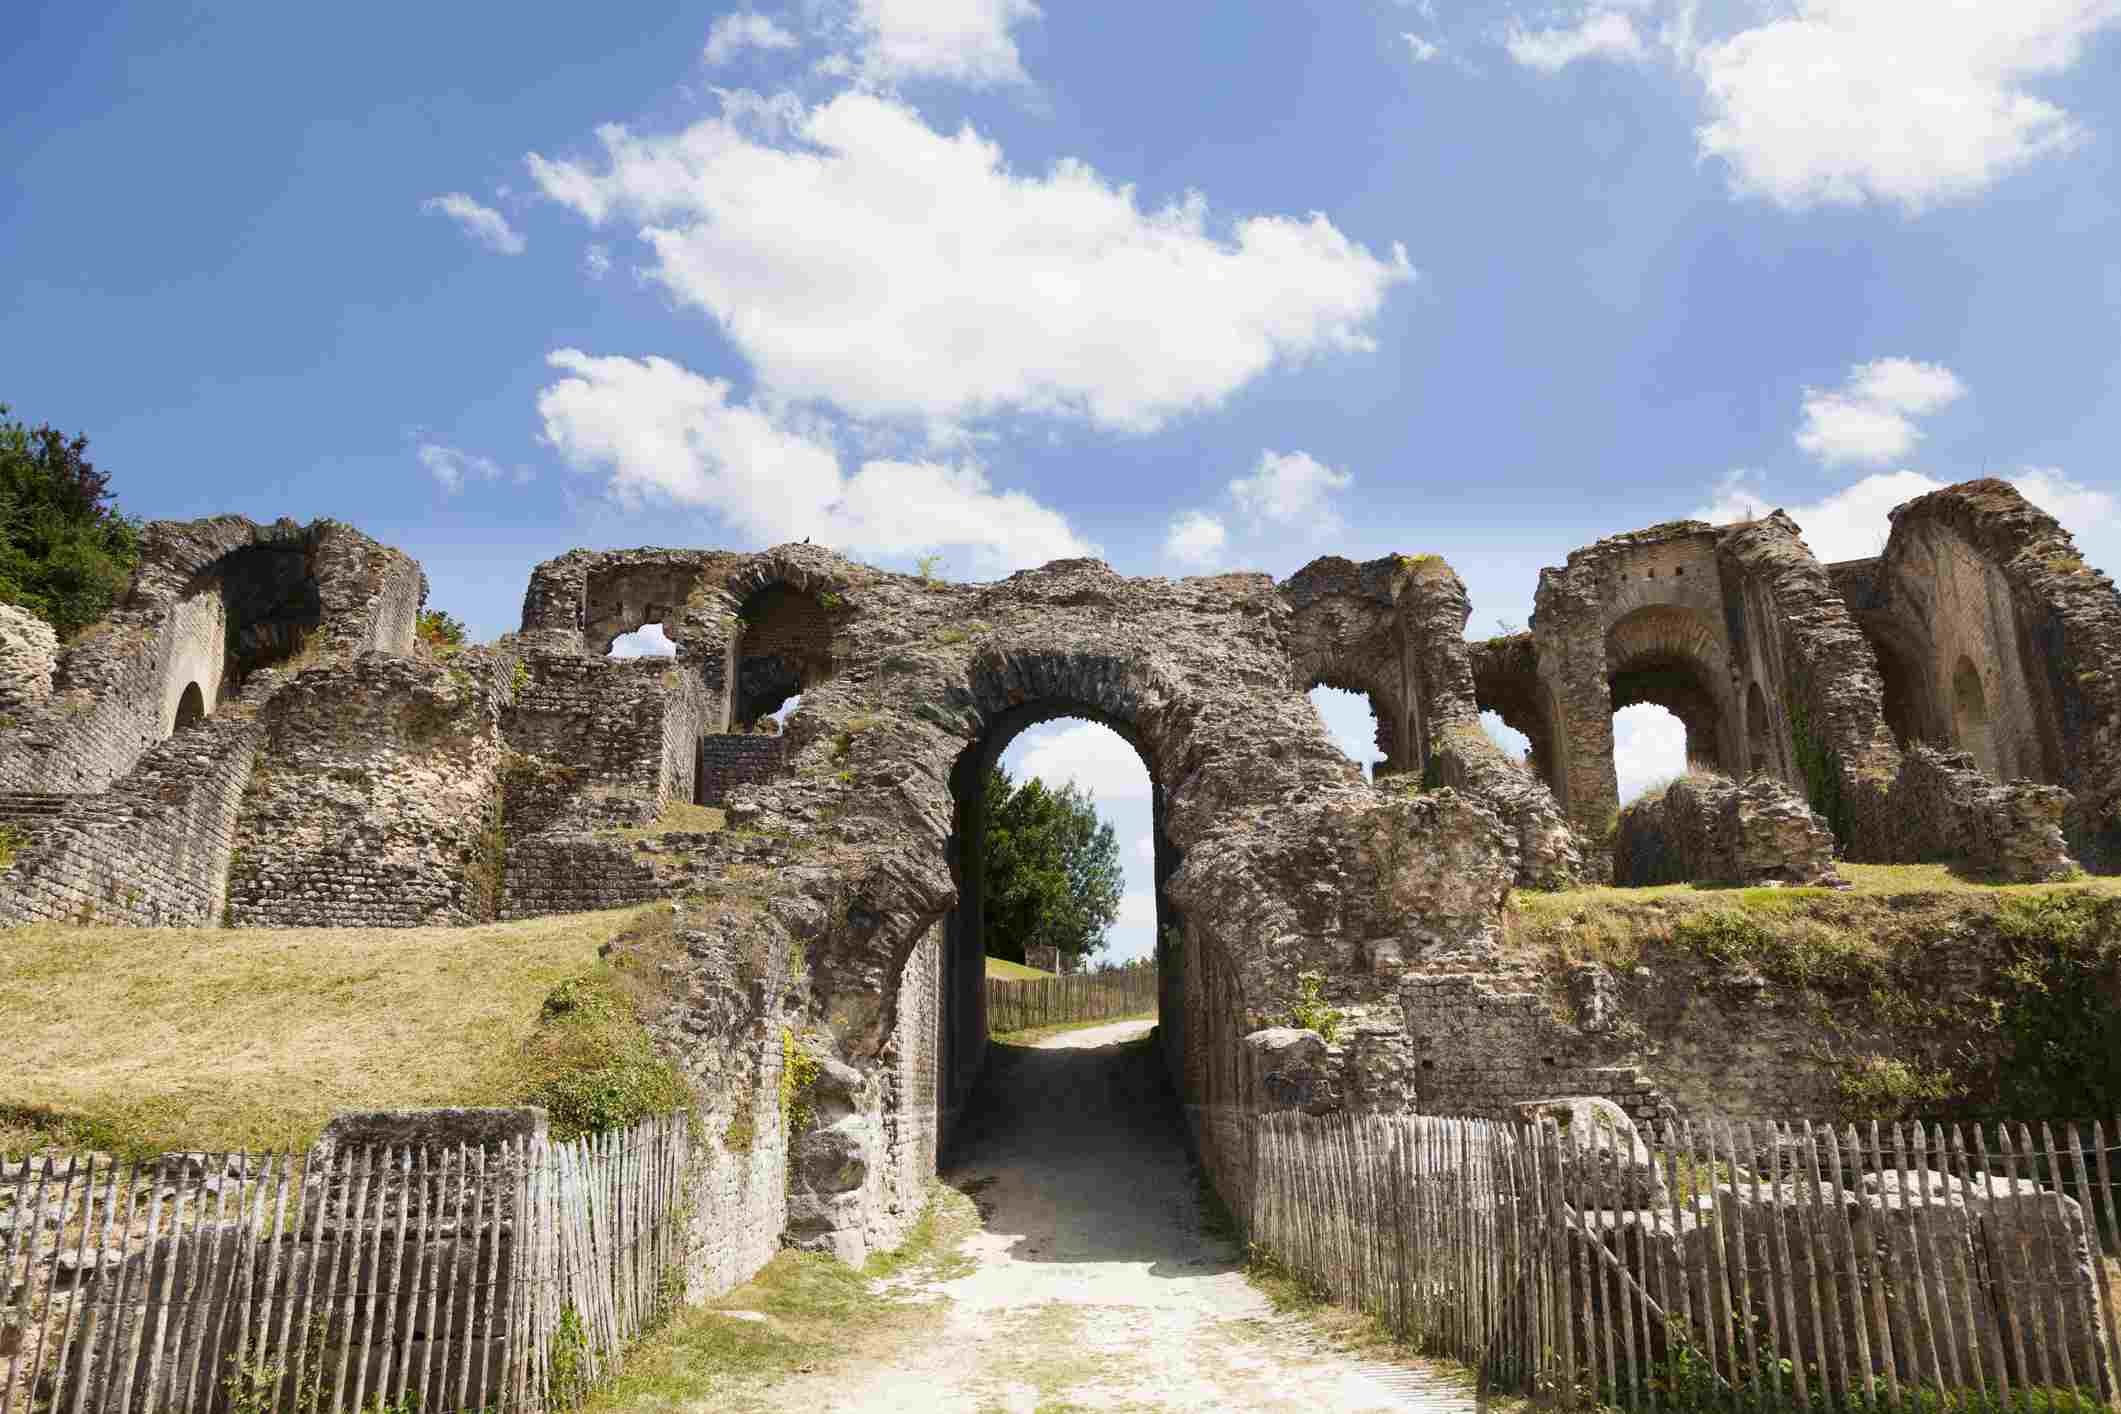 Entrance to the arena of the Roman amphitheatre in Saintes in France